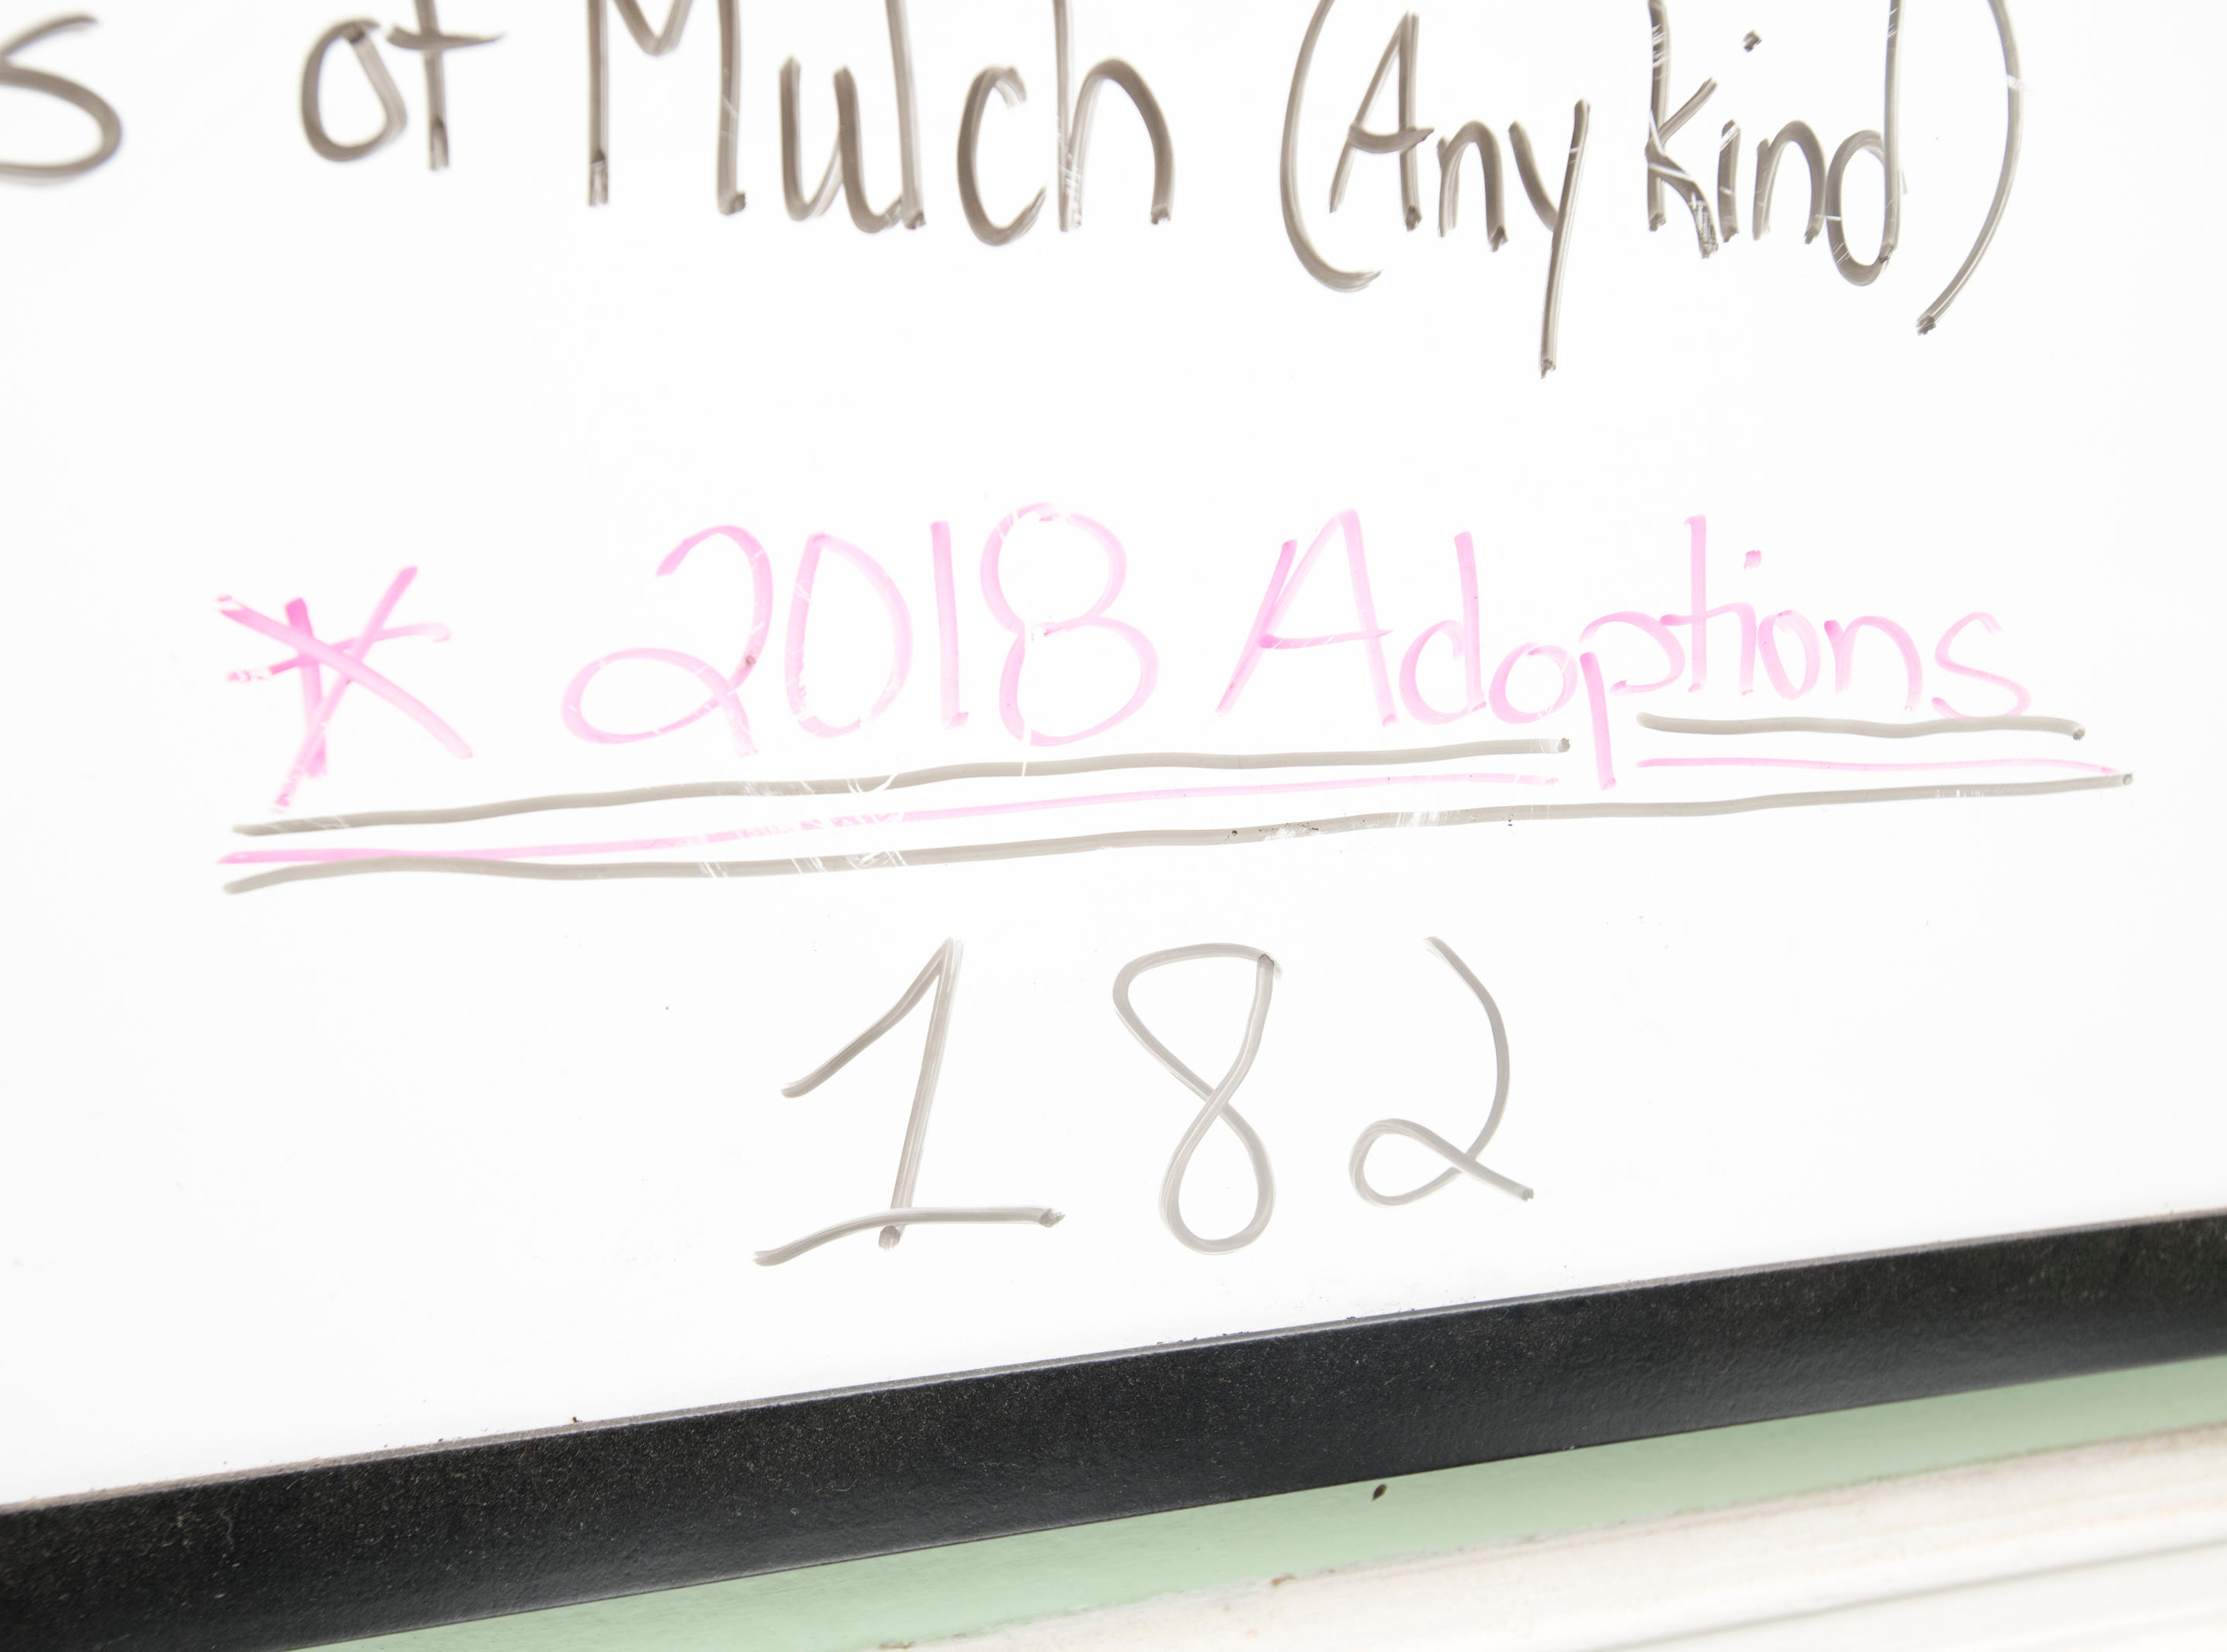 A sign indicates that 182 dogs have been adopted so far this year at the Phoenix Rising Rescue & Adoption Center in Cantonment on Tuesday, December 4, 2018.